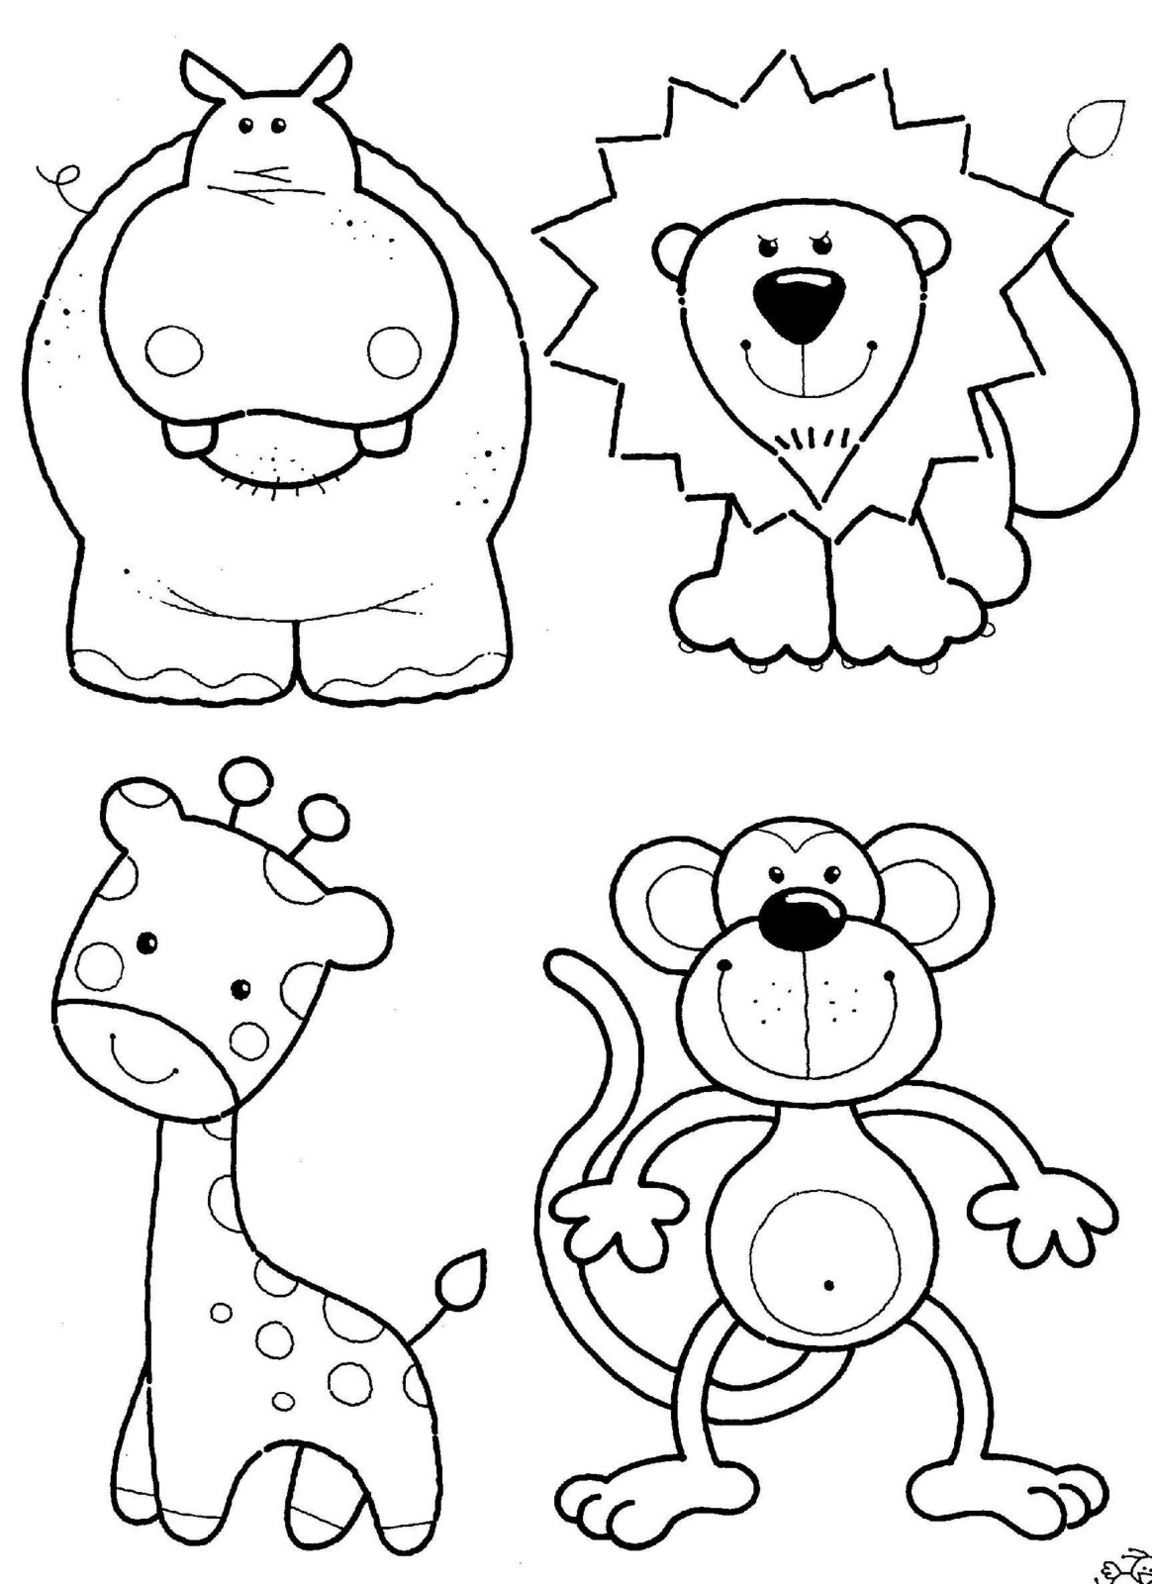 1152x1584 Coloring Pages To Print Animals Coloring Pages To Print Animals